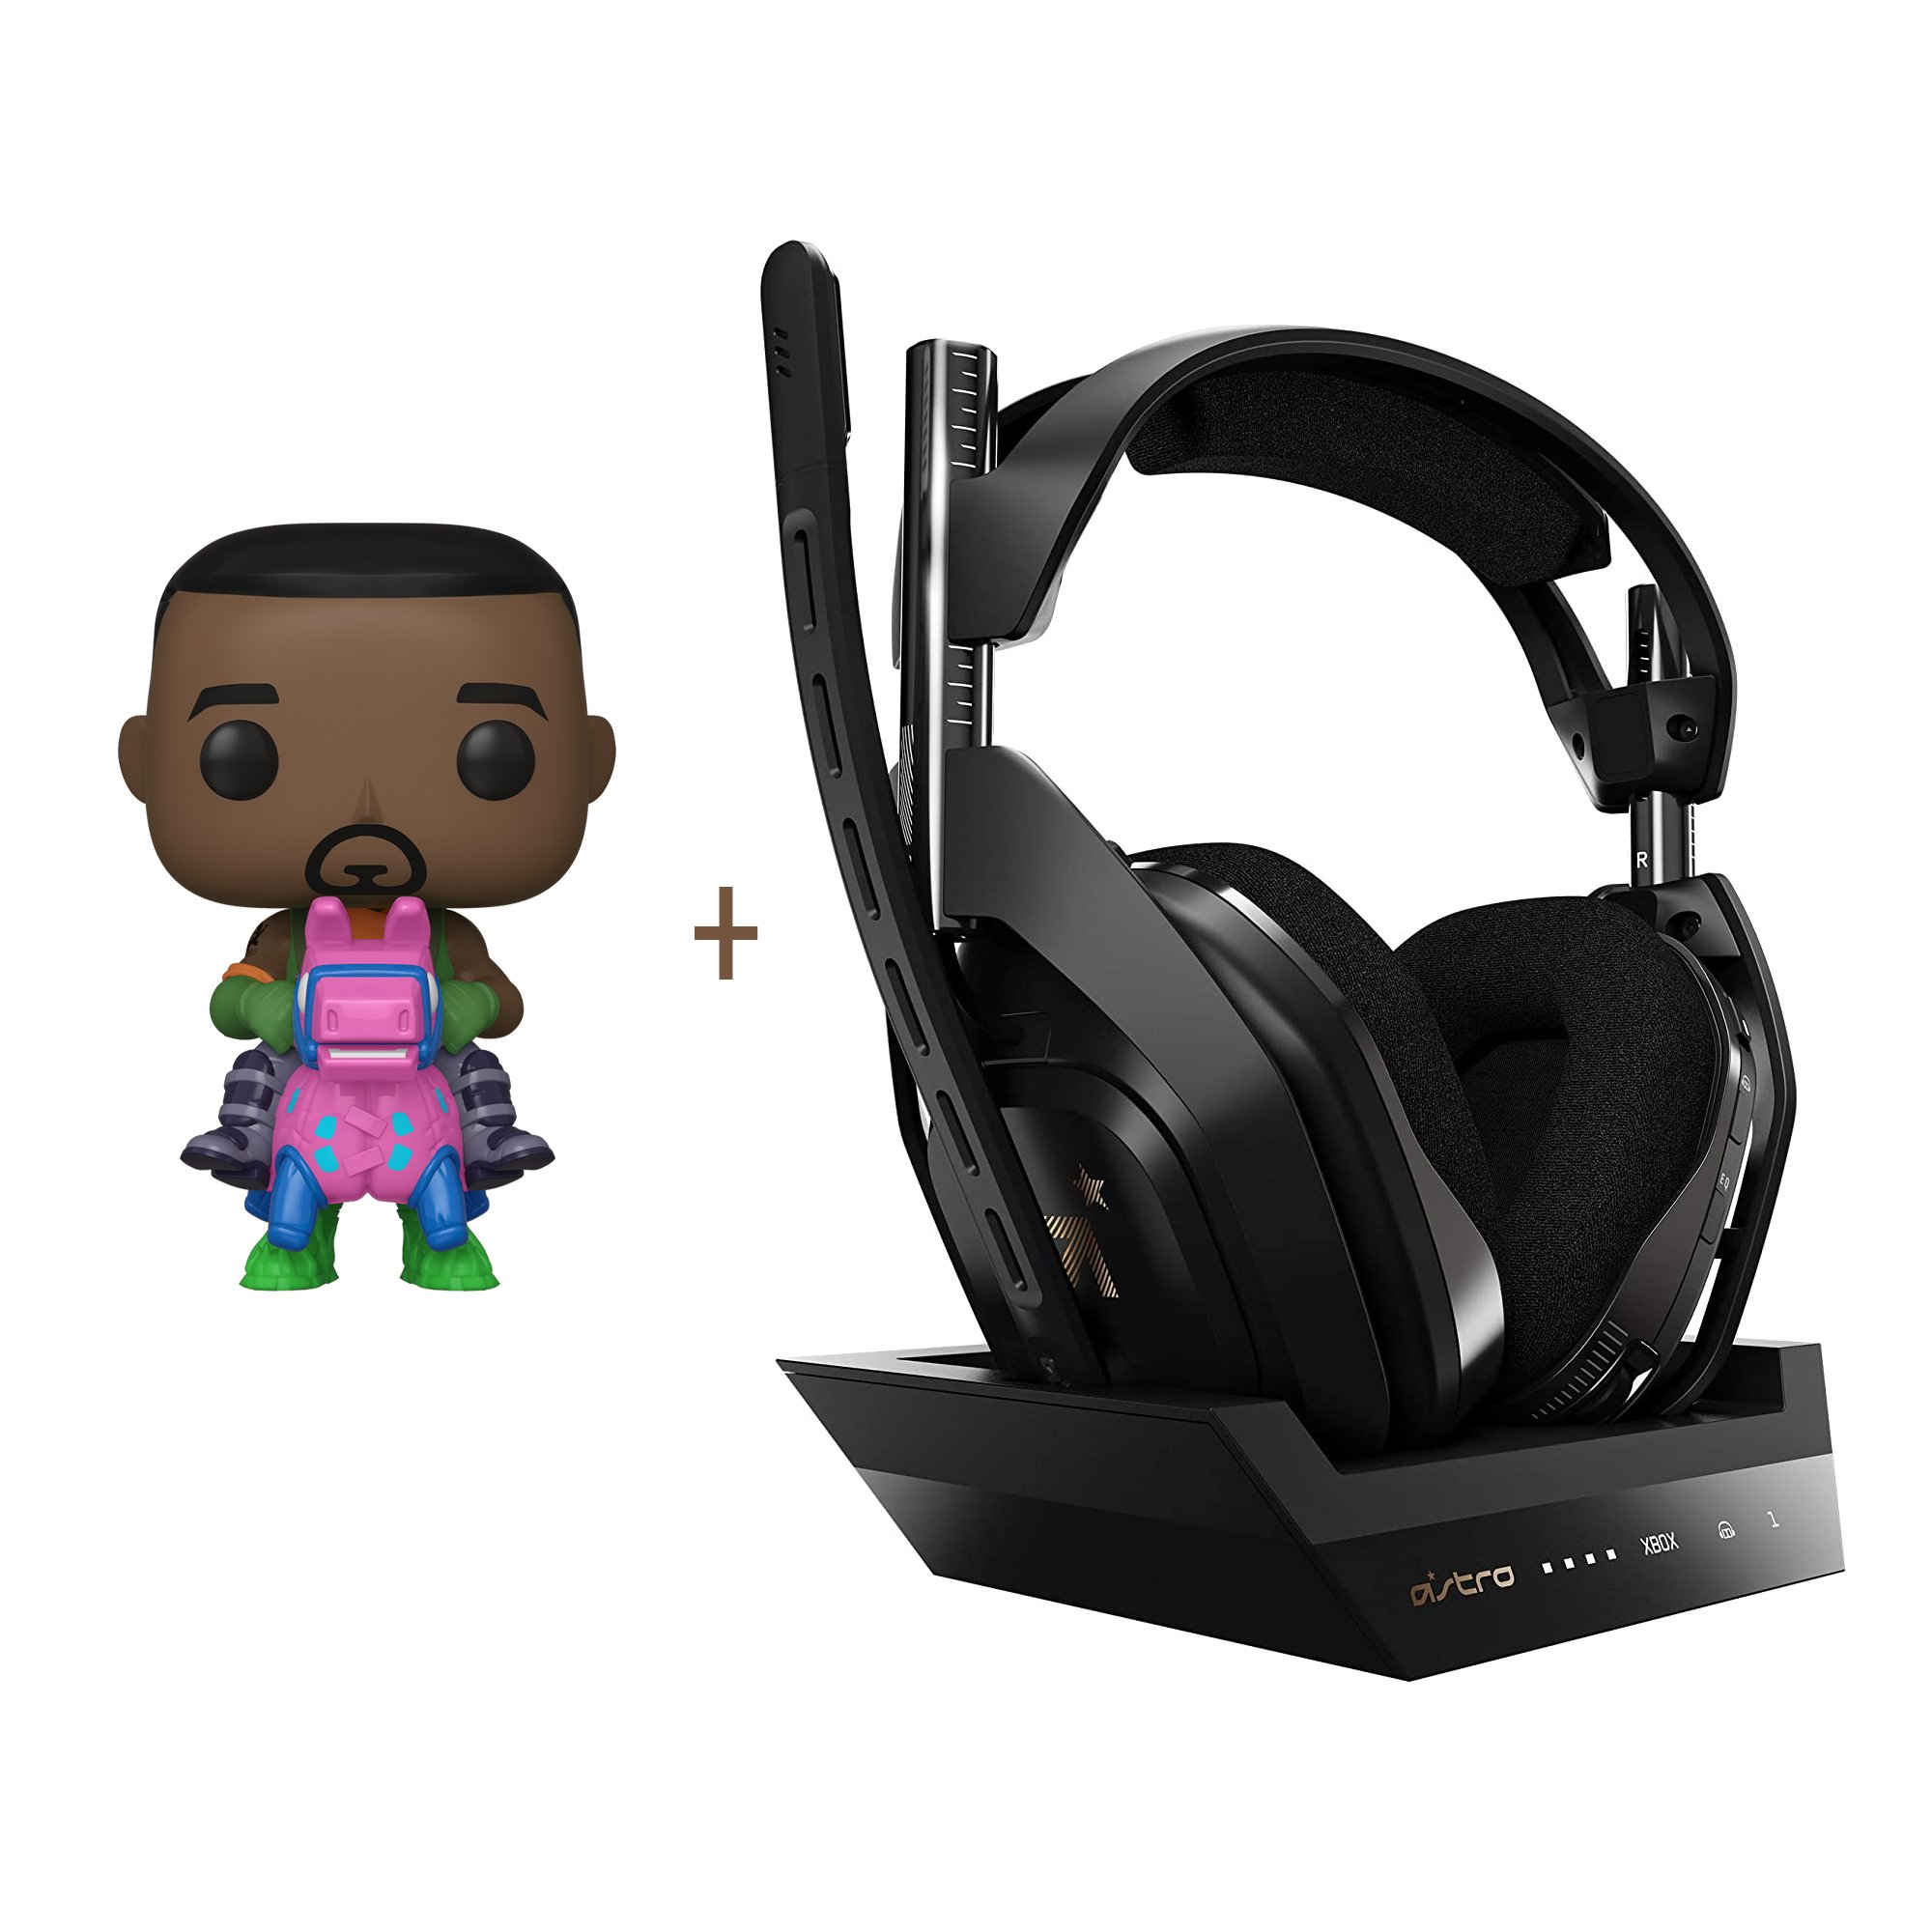 ASTRO A50 Wireless + Base Station for Xbox S,X/PC + Funko! POP - Games: Fortnite - Giddy Up (44732) - Bundle